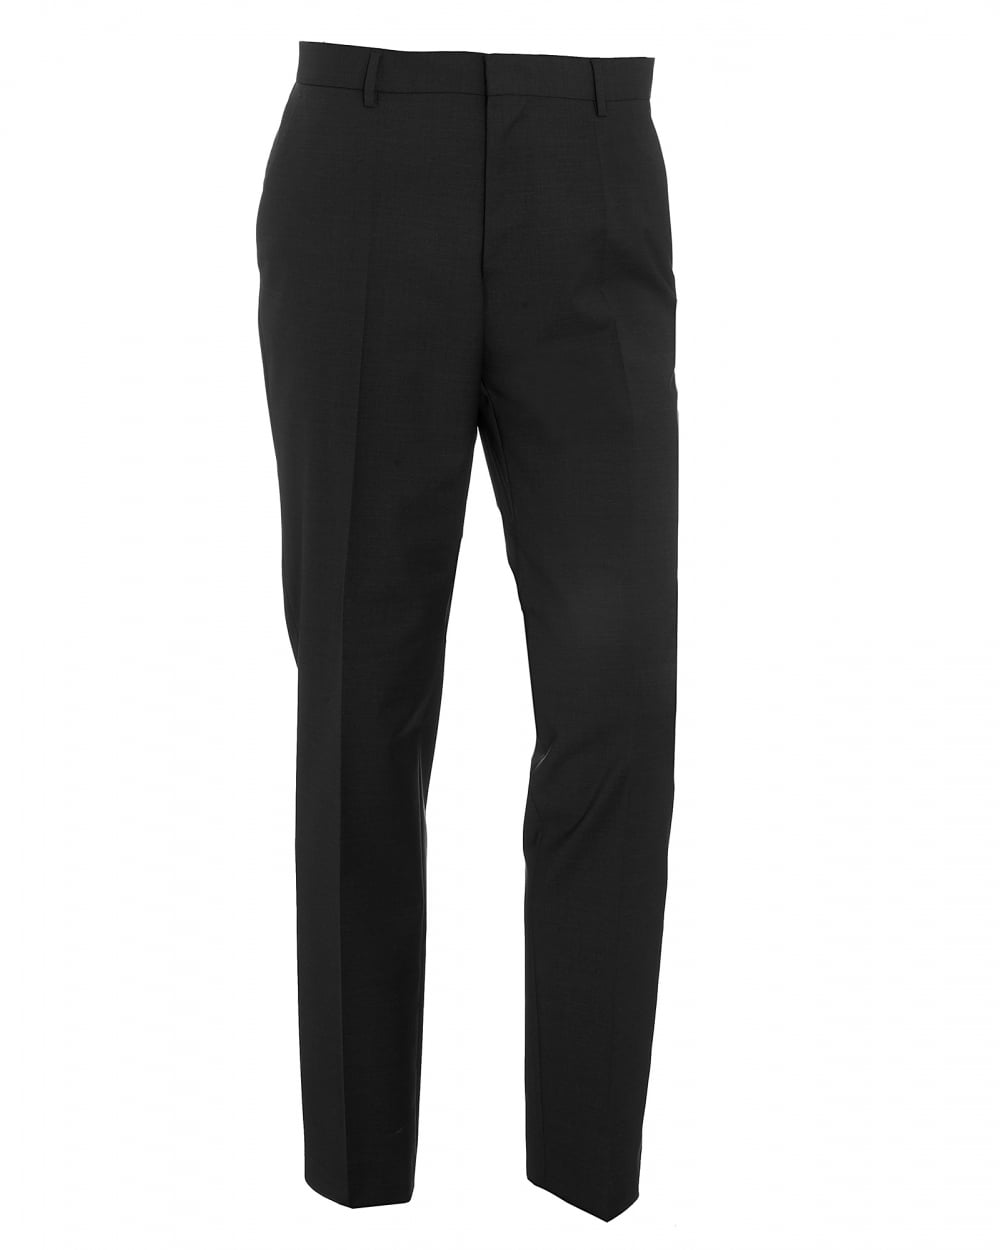 Mens Balte Slim Fit Stretch Wool Charcoal Grey Trousers